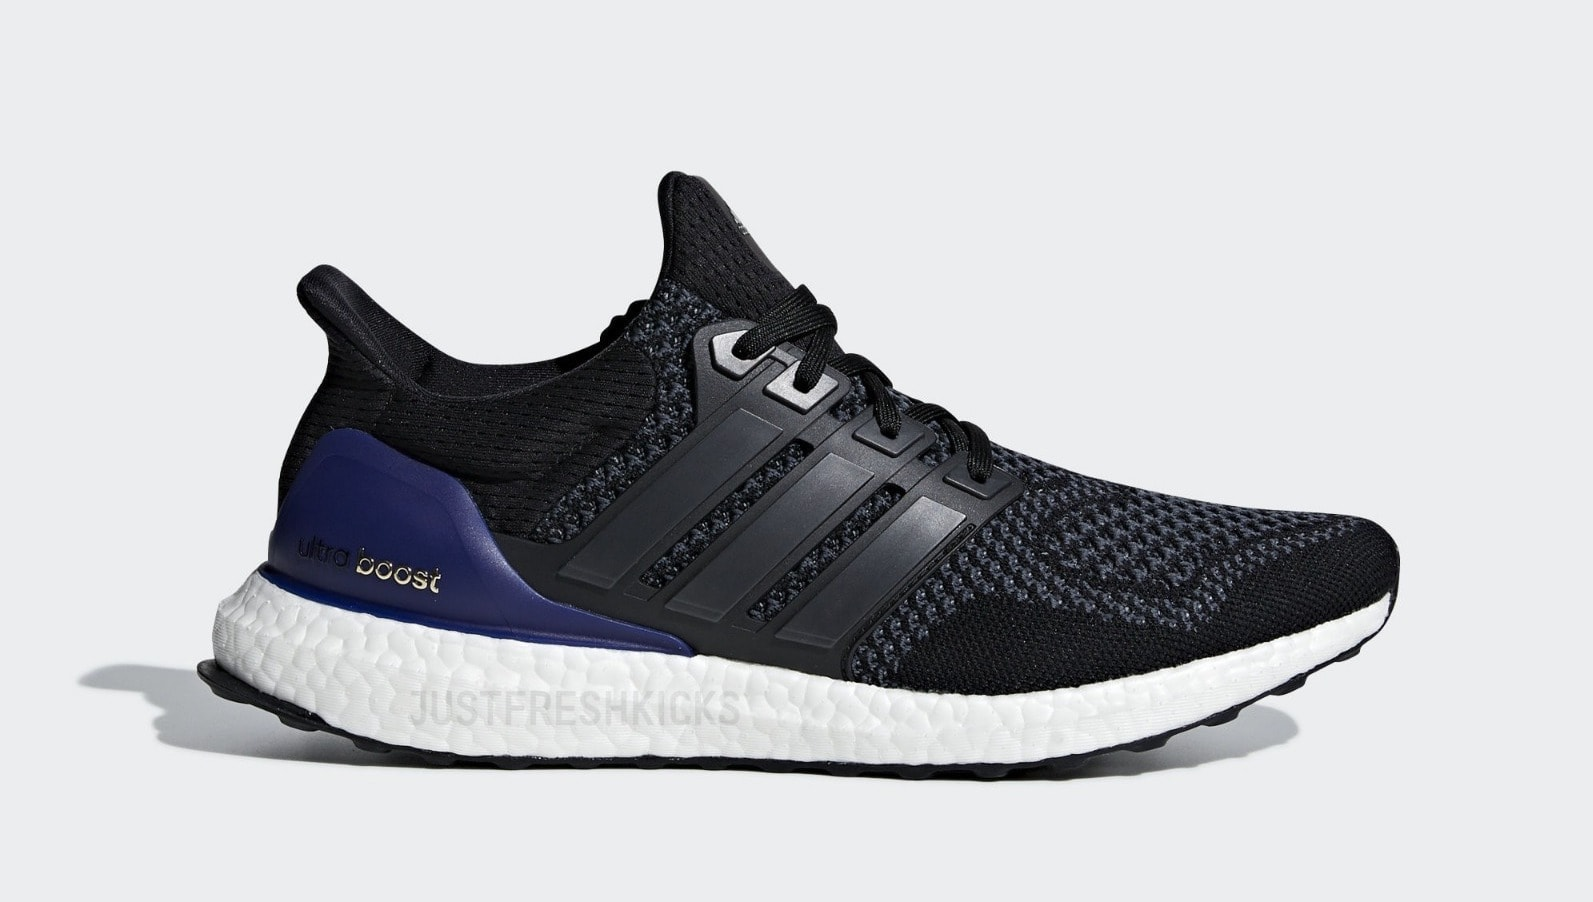 dd31747c0390a The adidas Ultra Boost Returns in its Original 1.0 Primeknit Pattern This  Winter